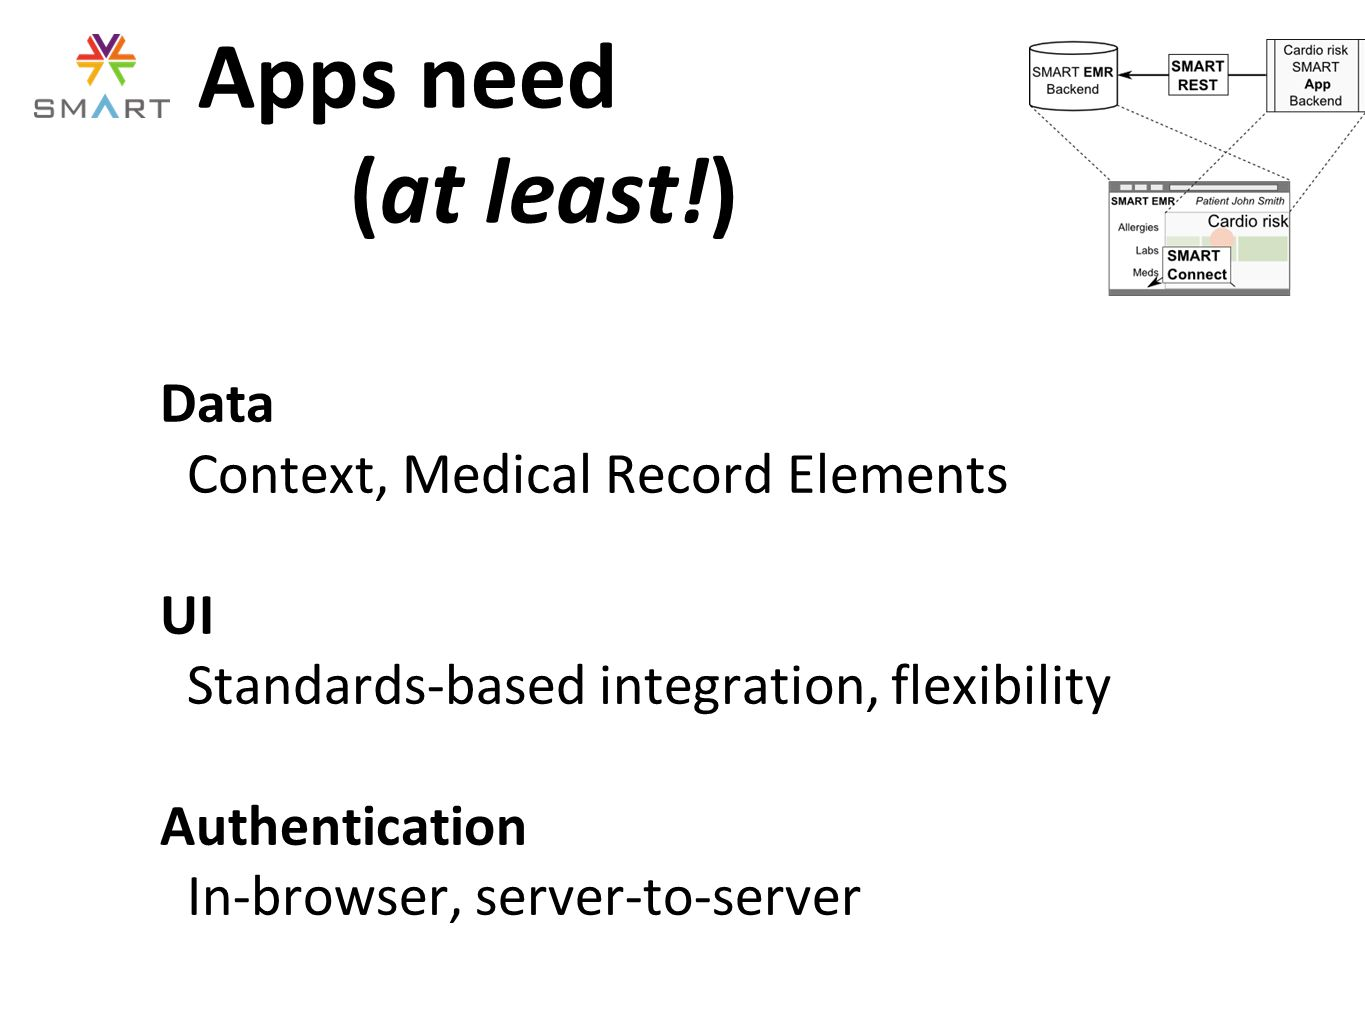 Data Context, Medical Record Elements UI Standards-based integration, flexibility Authentication In-browser, server-to-server Apps need (at least!)